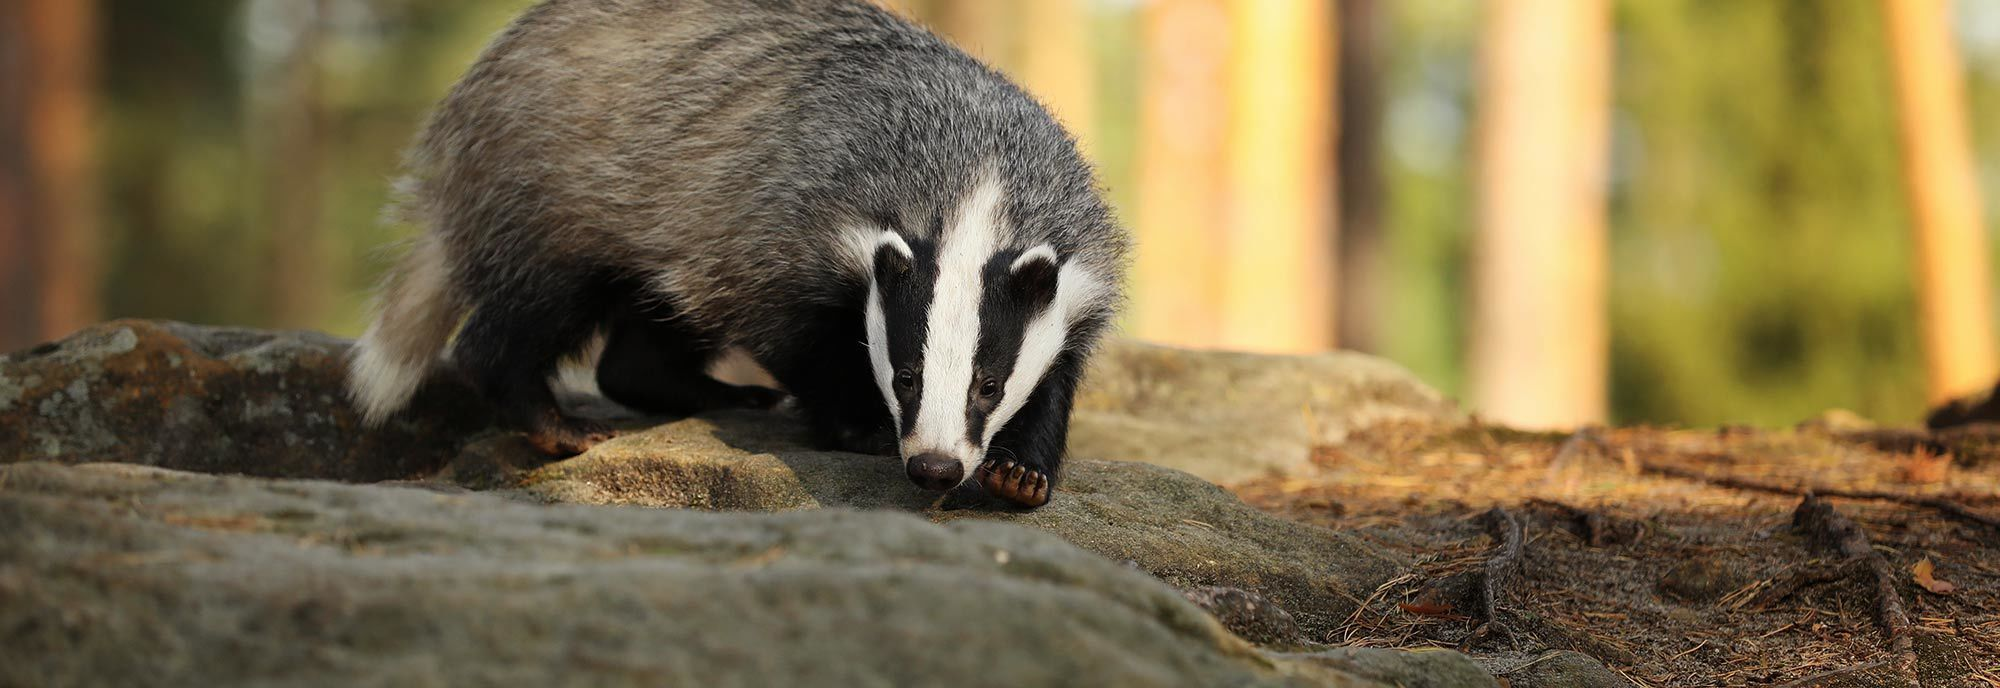 Badger standing on rocks